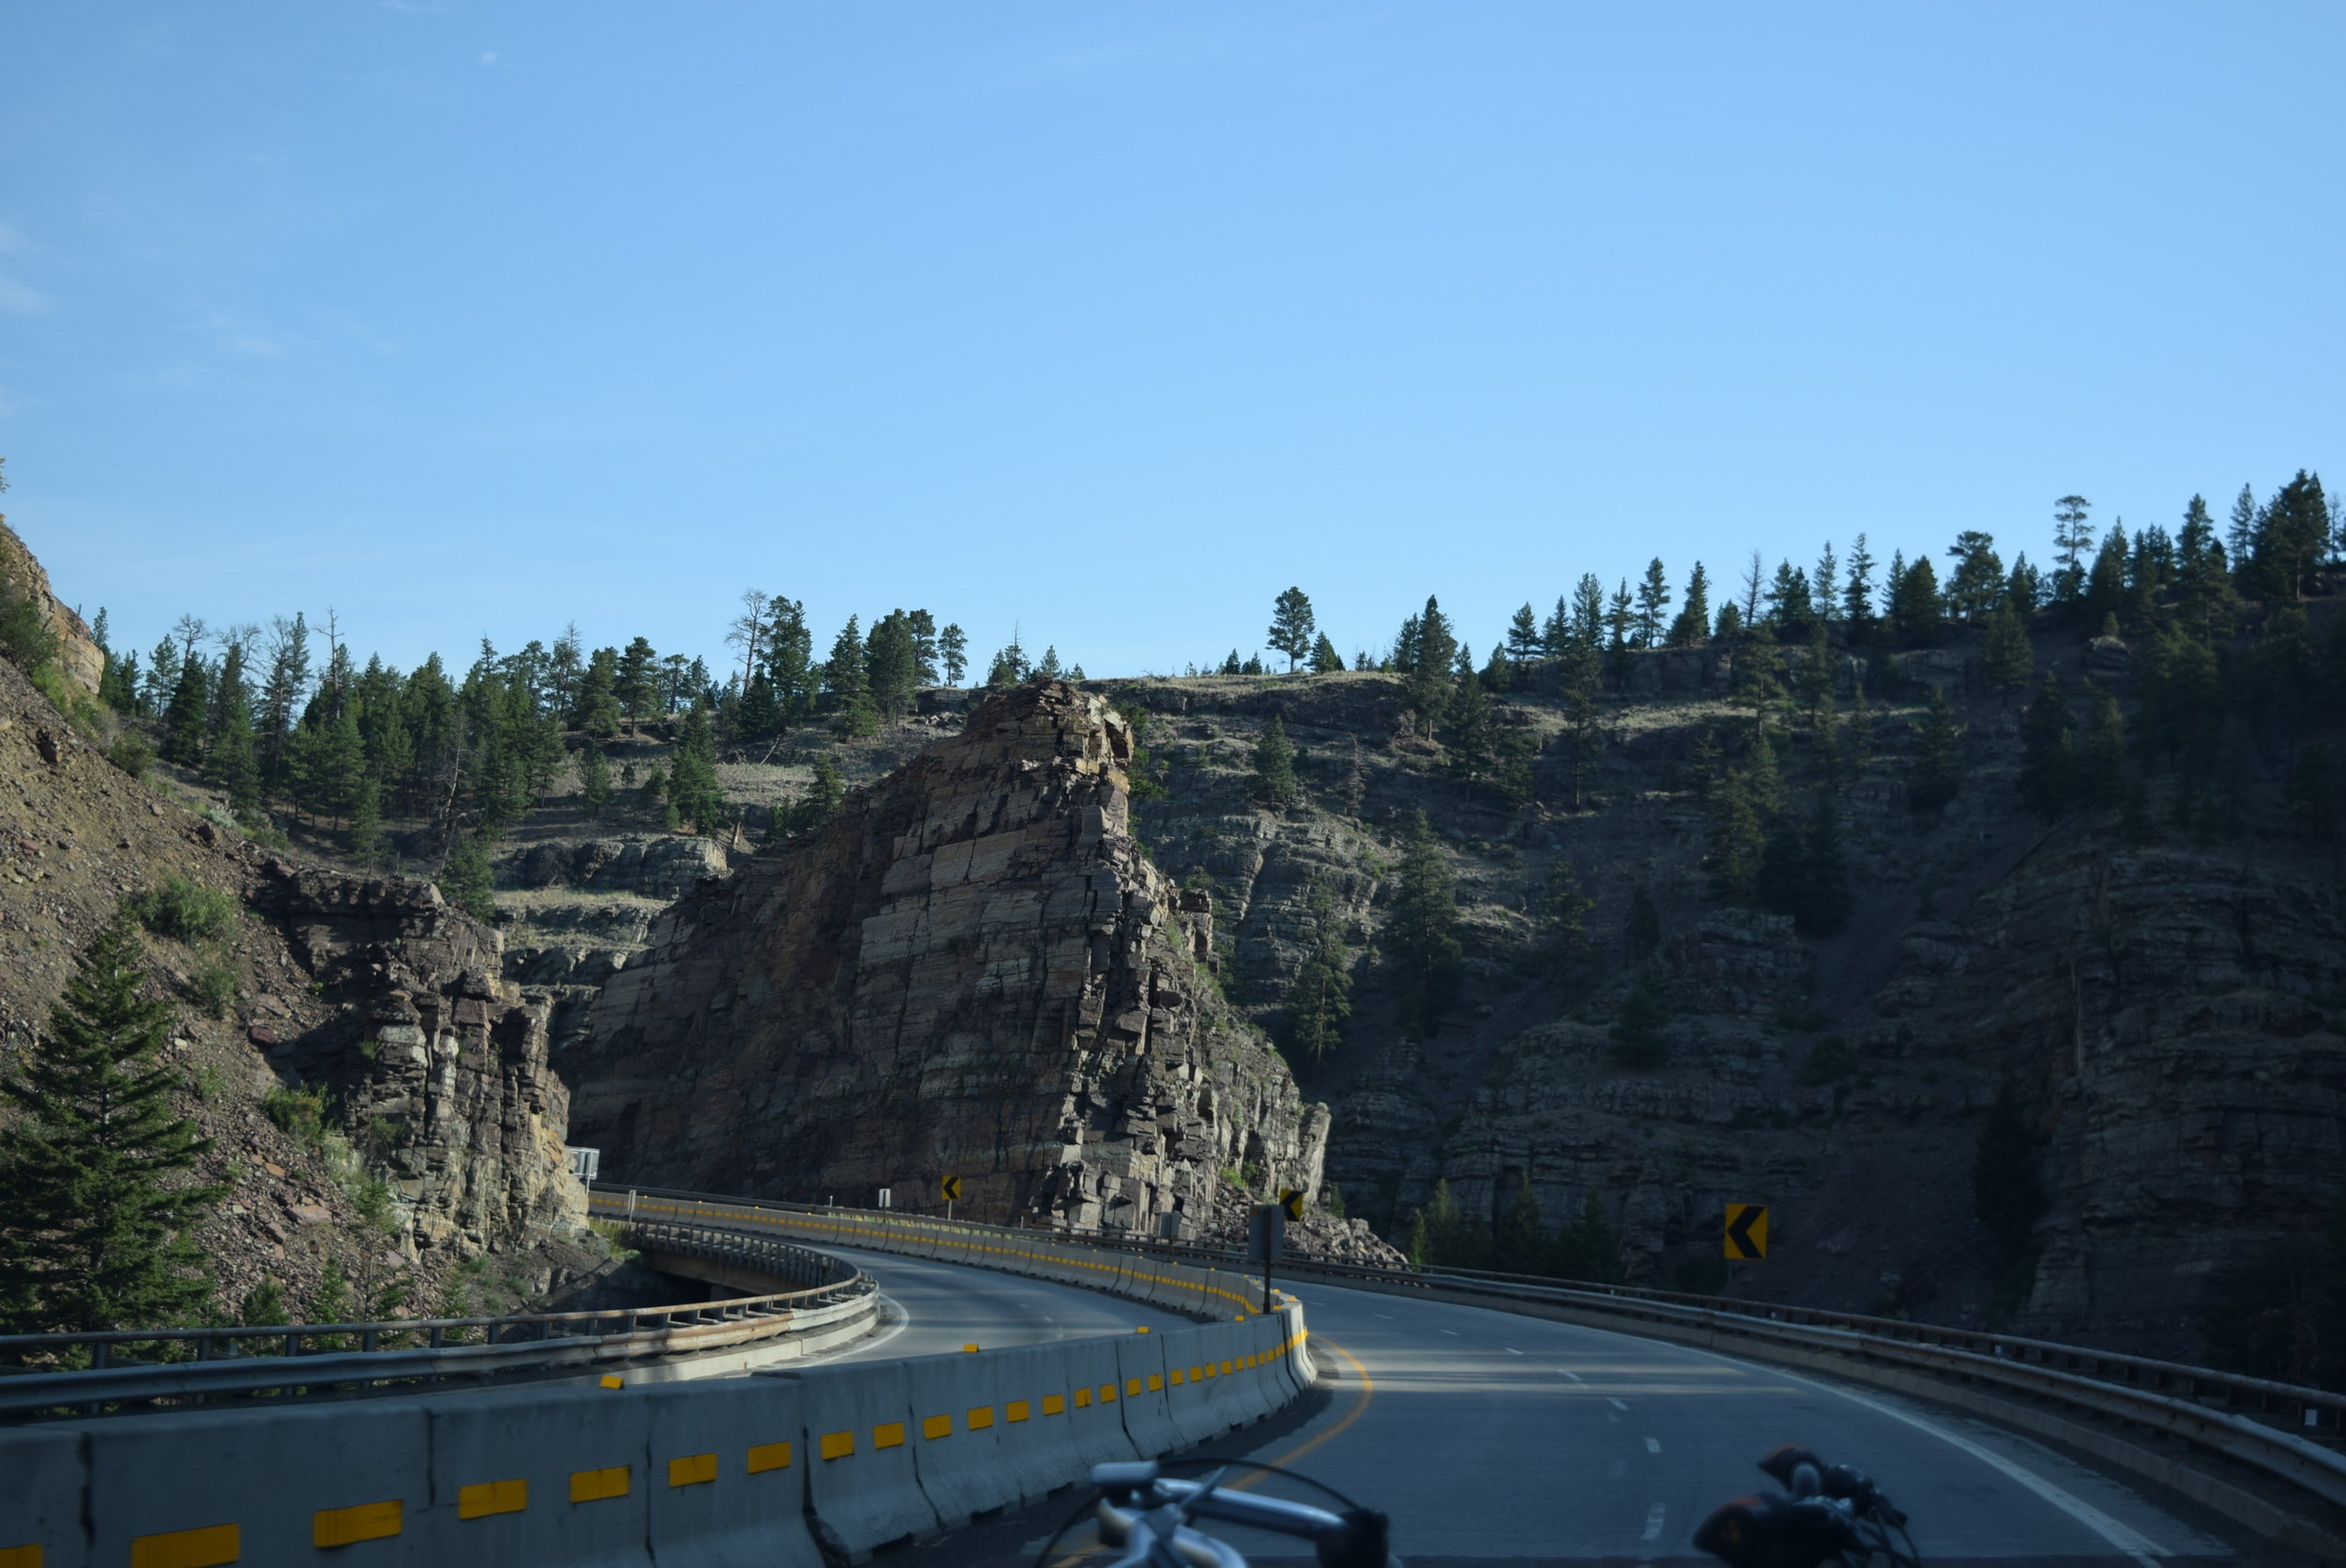 Now we are getting into the area of Montana I love!